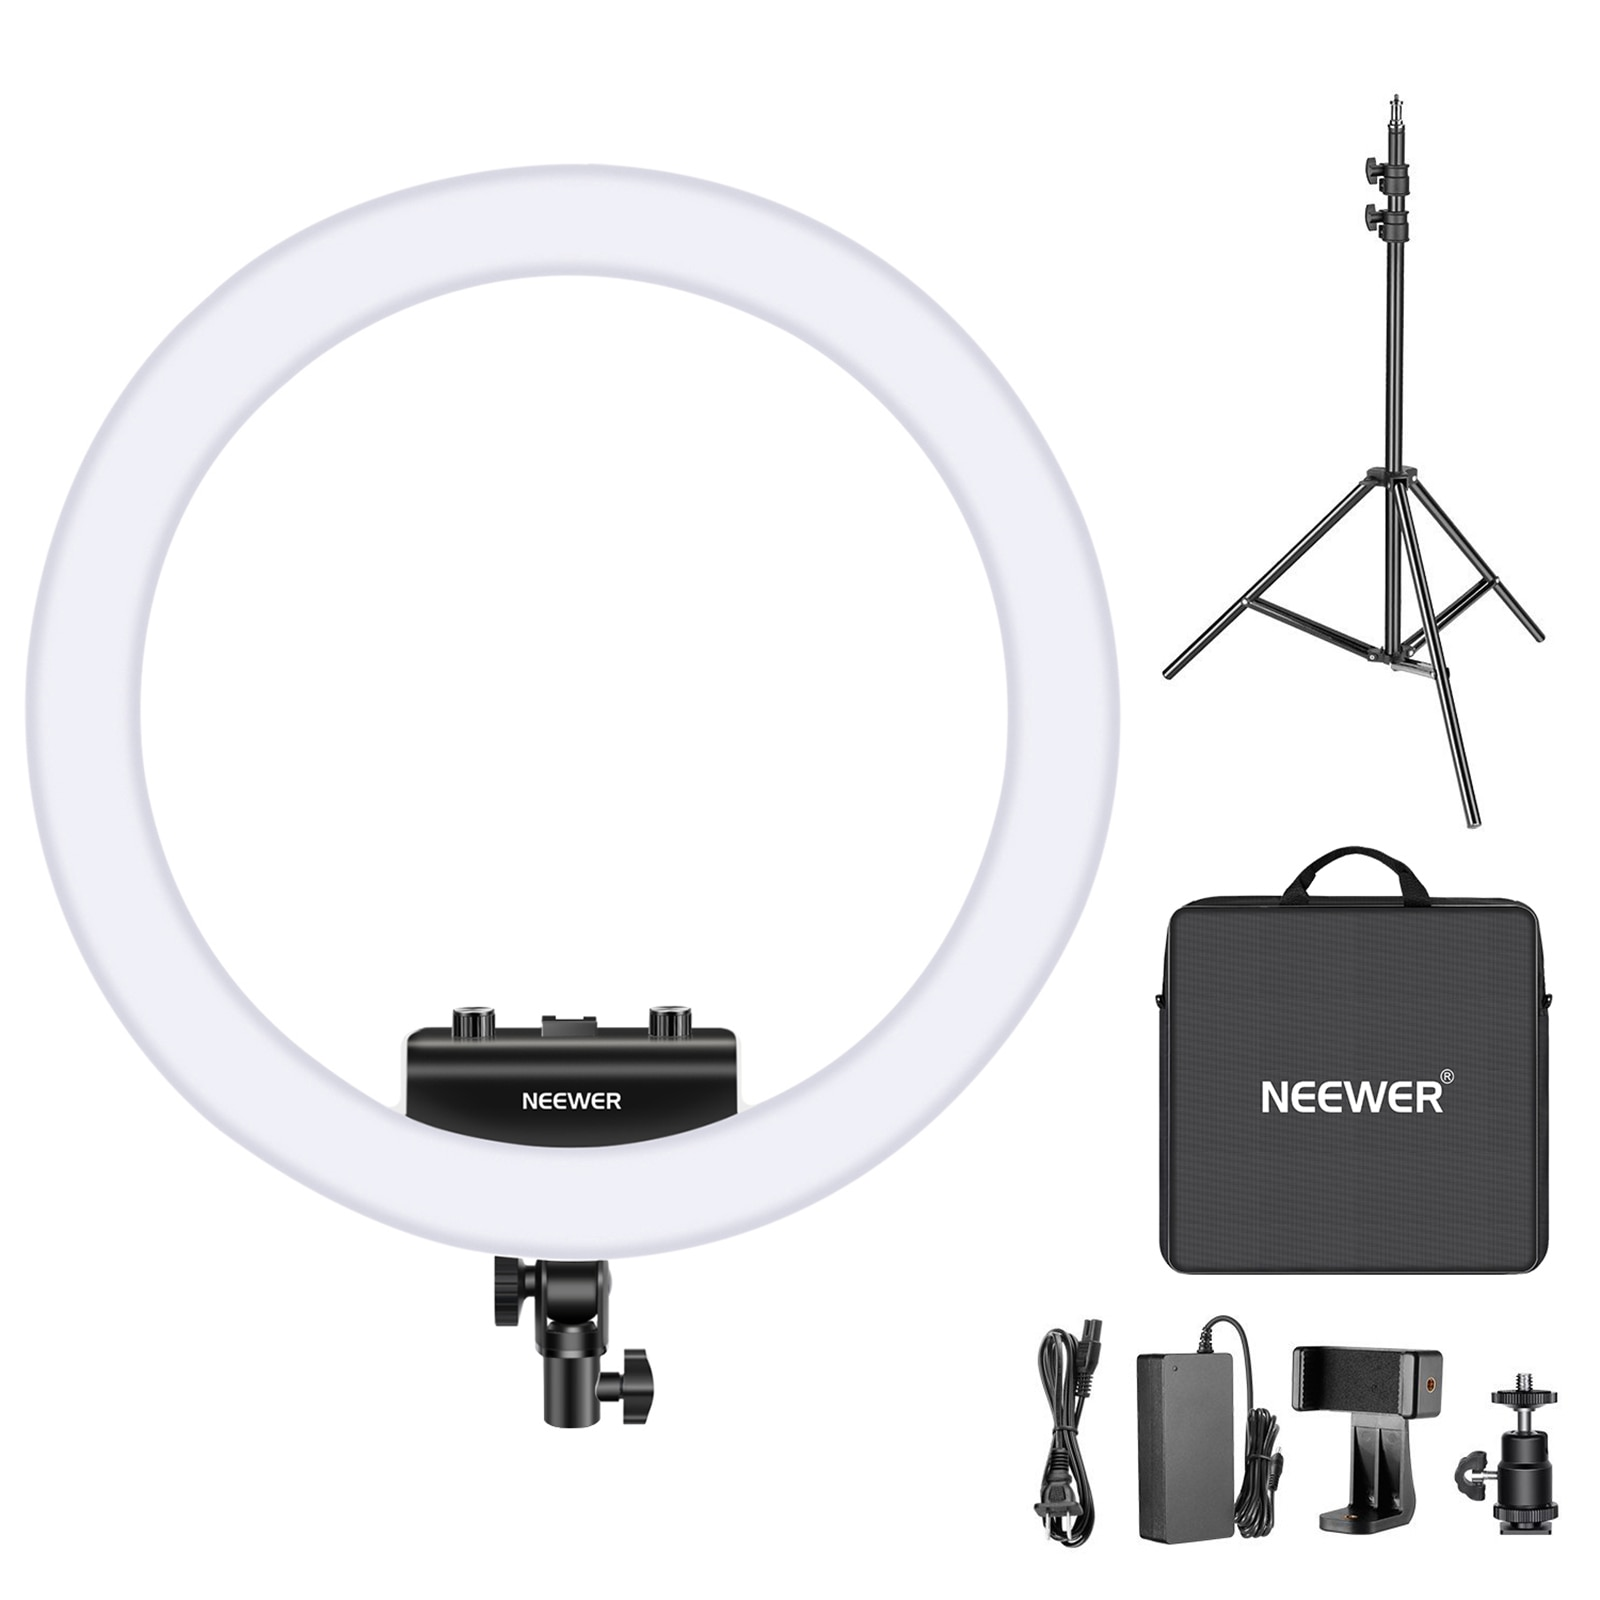 Neewer Ring Light Kit [Upgraded Version-1.3cm Ultra Slim]-18 inches 3200-5600K Dimmable LED Ring Light with Light Stand ,Holder